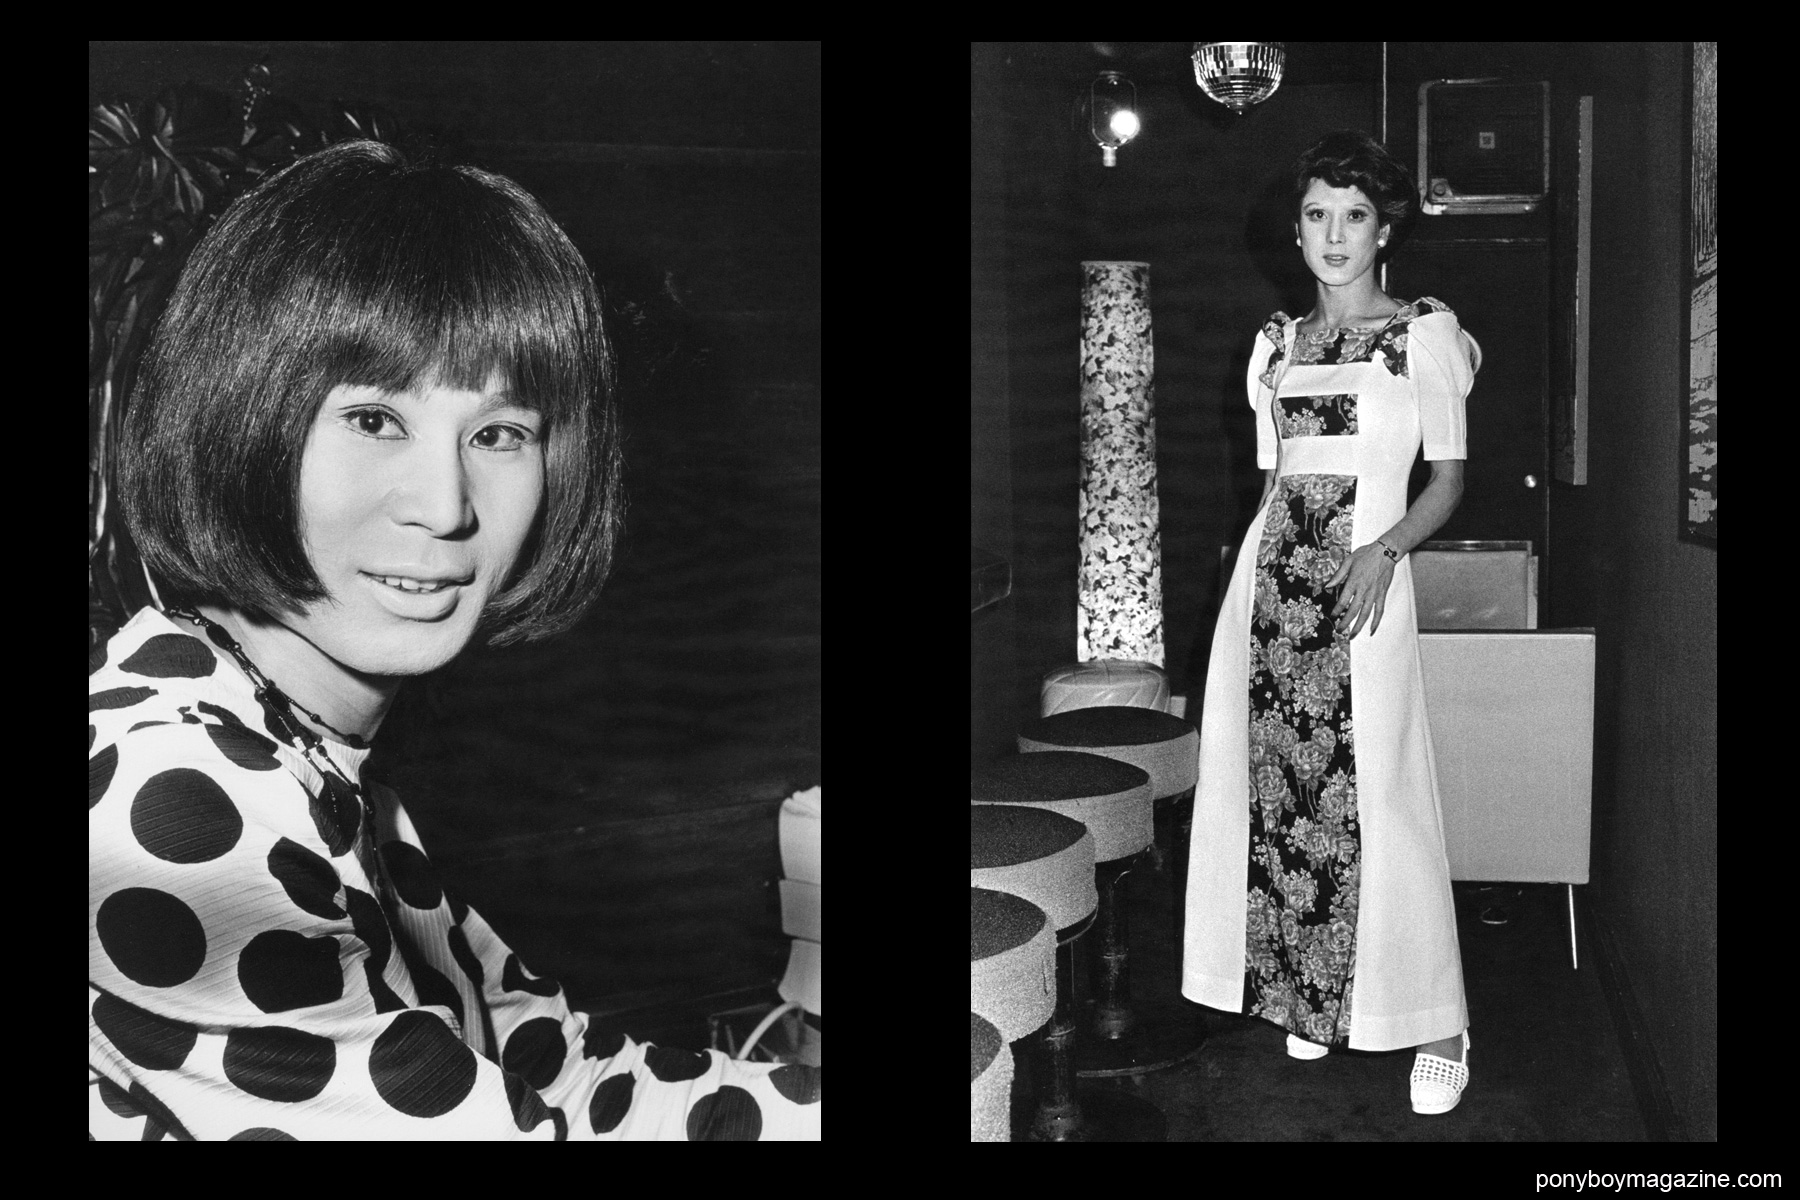 JapaDrag queens in 1960's-70's Tokyo photographed by Watanabe Katsumi in the amazing book Gangs of Kabukicho.